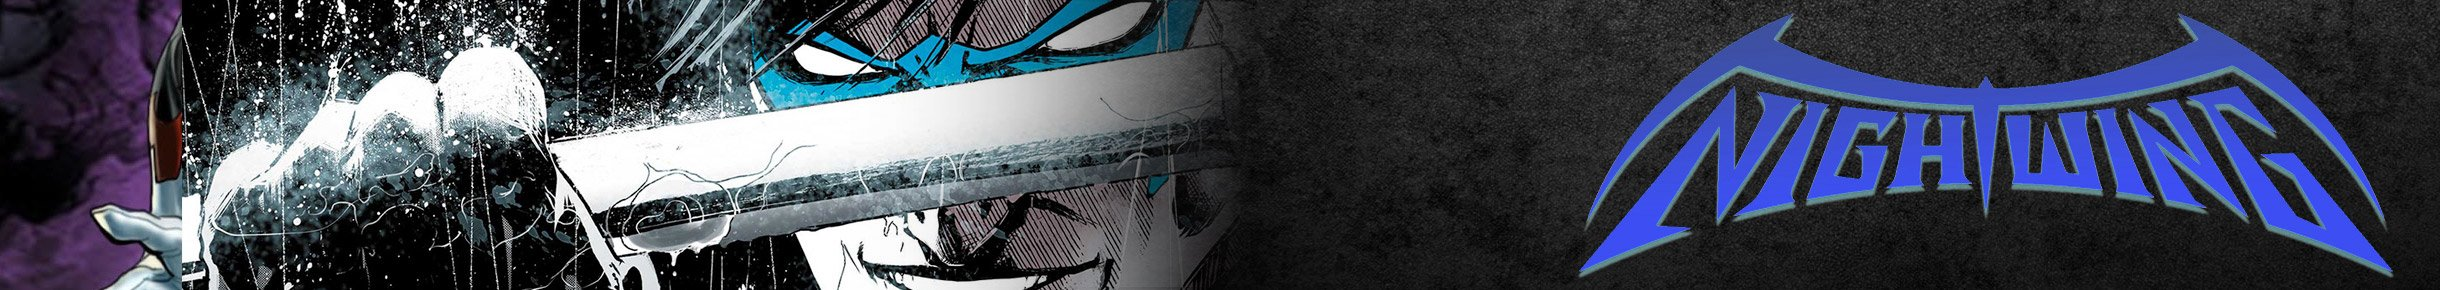 Nightwing Hoodies Banner